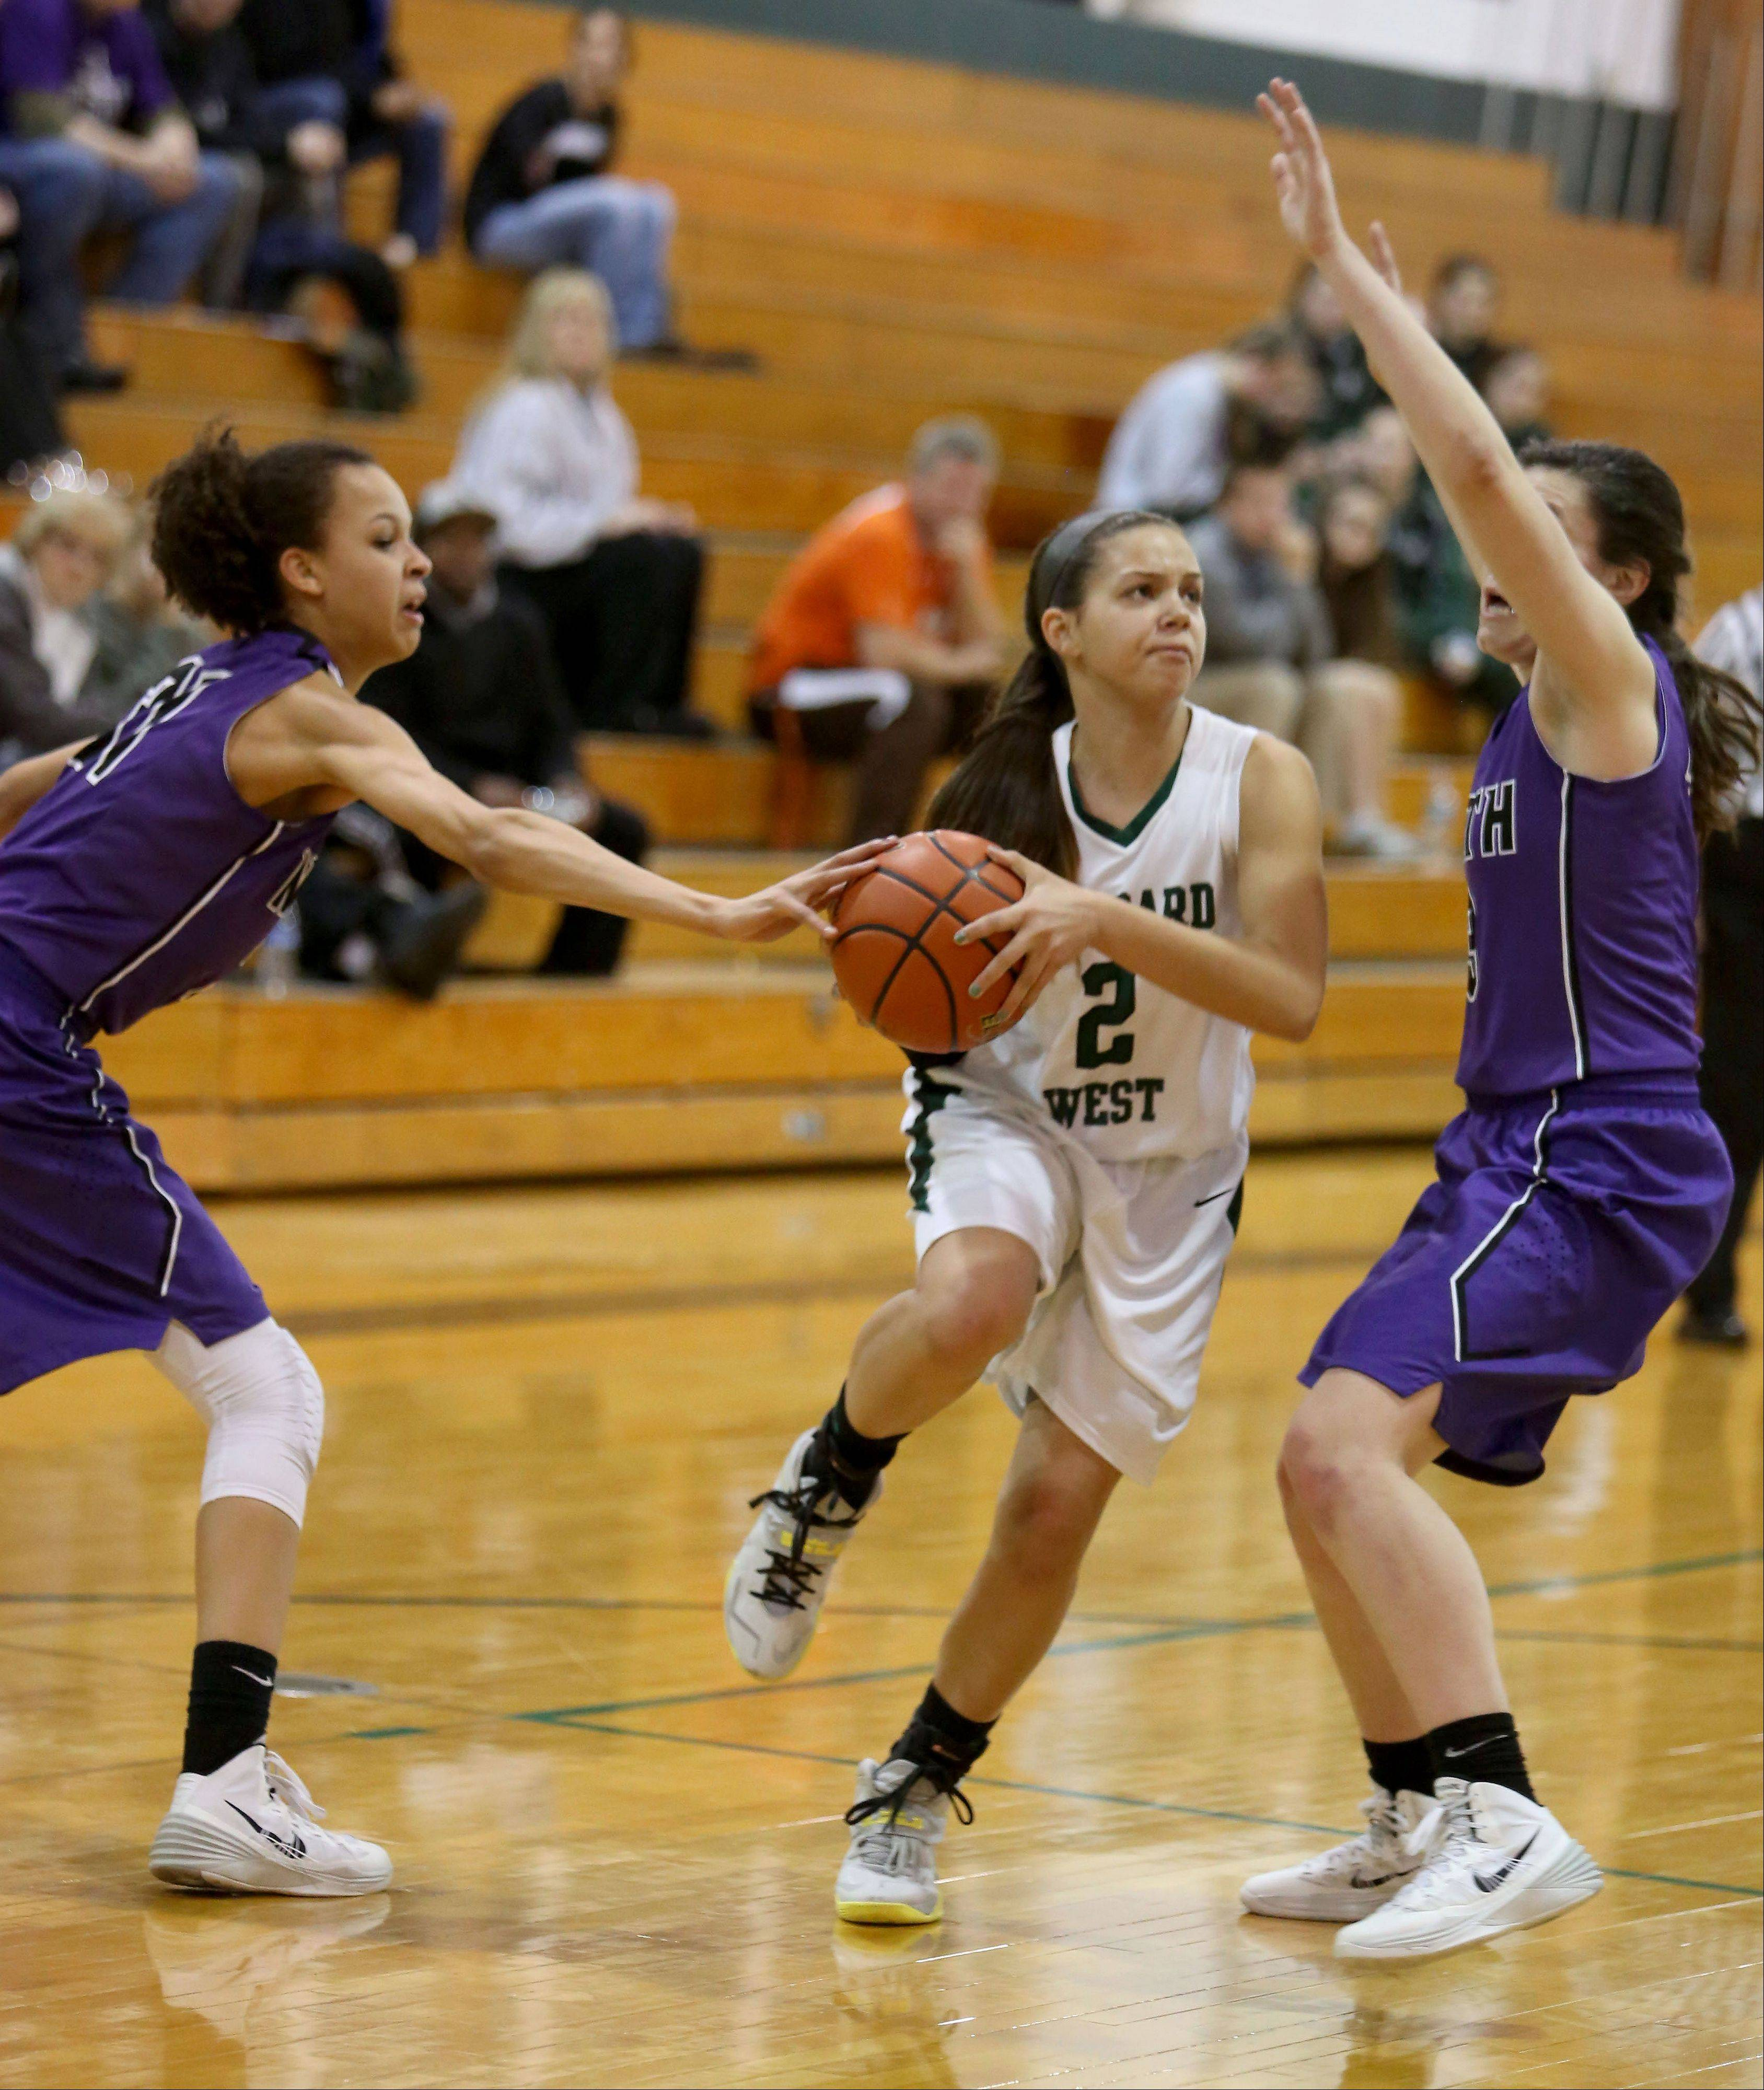 Grey Hayes of Glenbard West, center, moves toward the basket as Jaida Green, left and Sarah Costello of Downers Grove North defend.